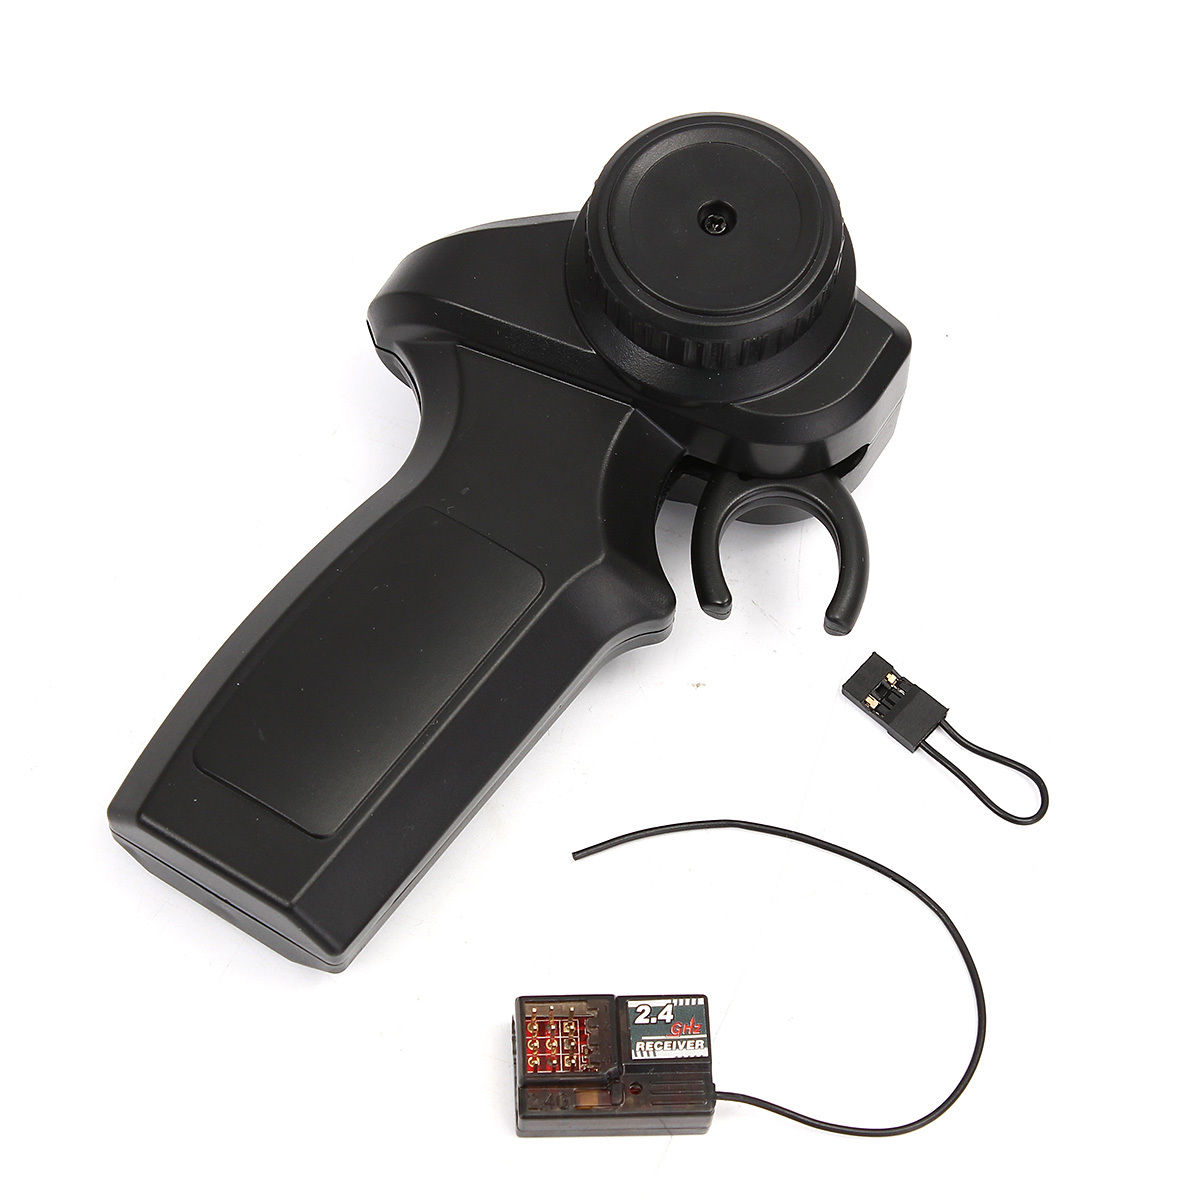 New Sports Skateboard Radio Remote Receiver Transmitter 2.4GHz For Electric Skateboard Longboard-in Skate Board from Sports & Entertainment